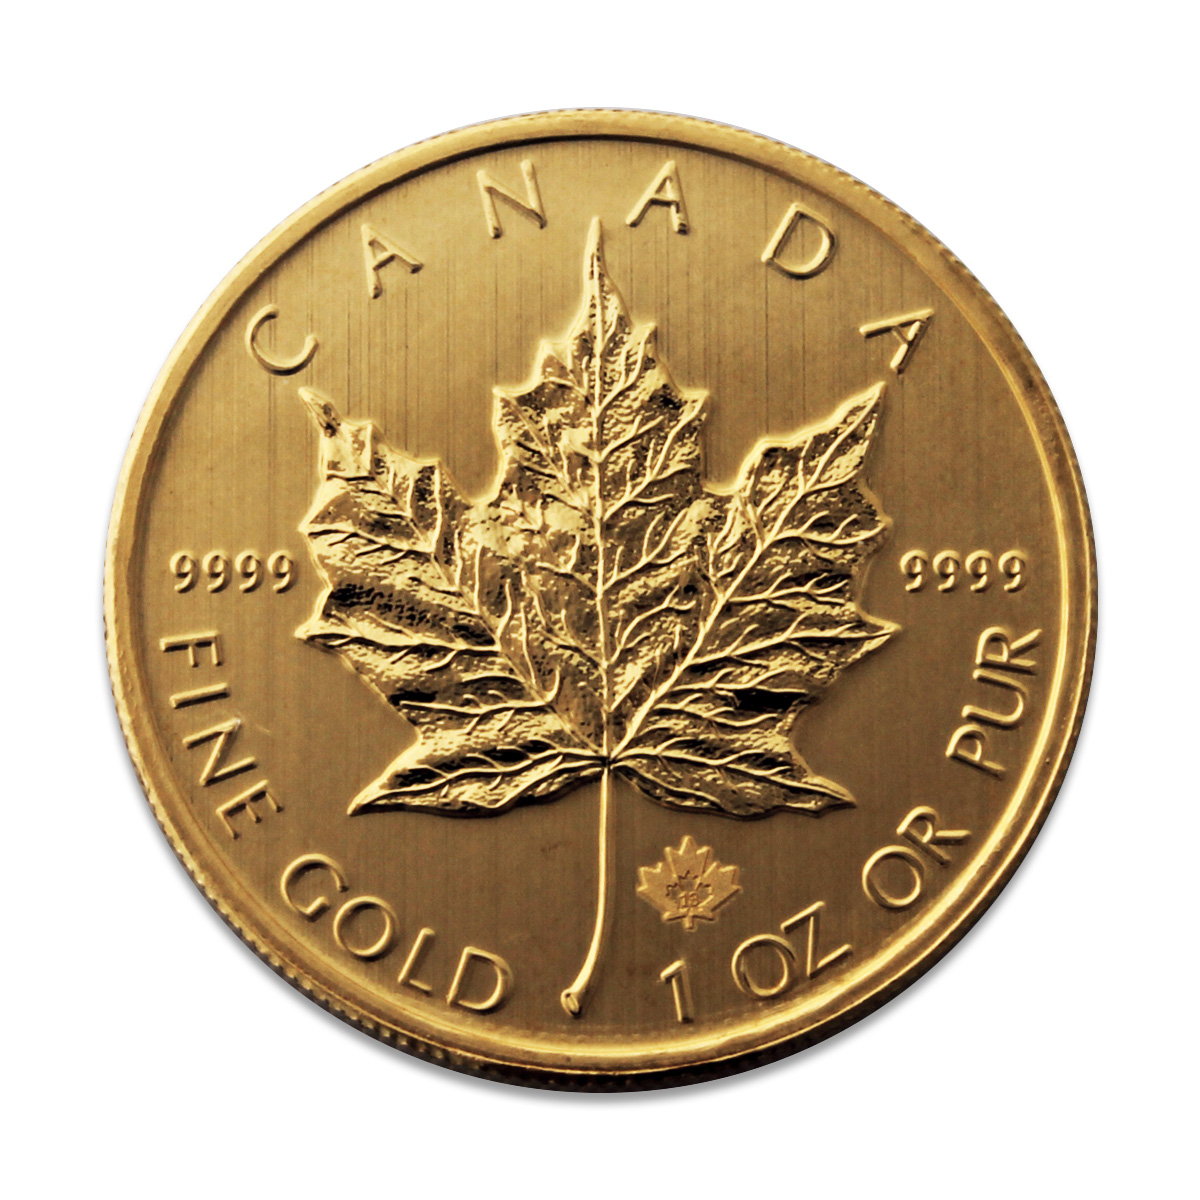 2013 1oz Gold Maple Leaf Coin 24 Carat Canadian Gold Coins